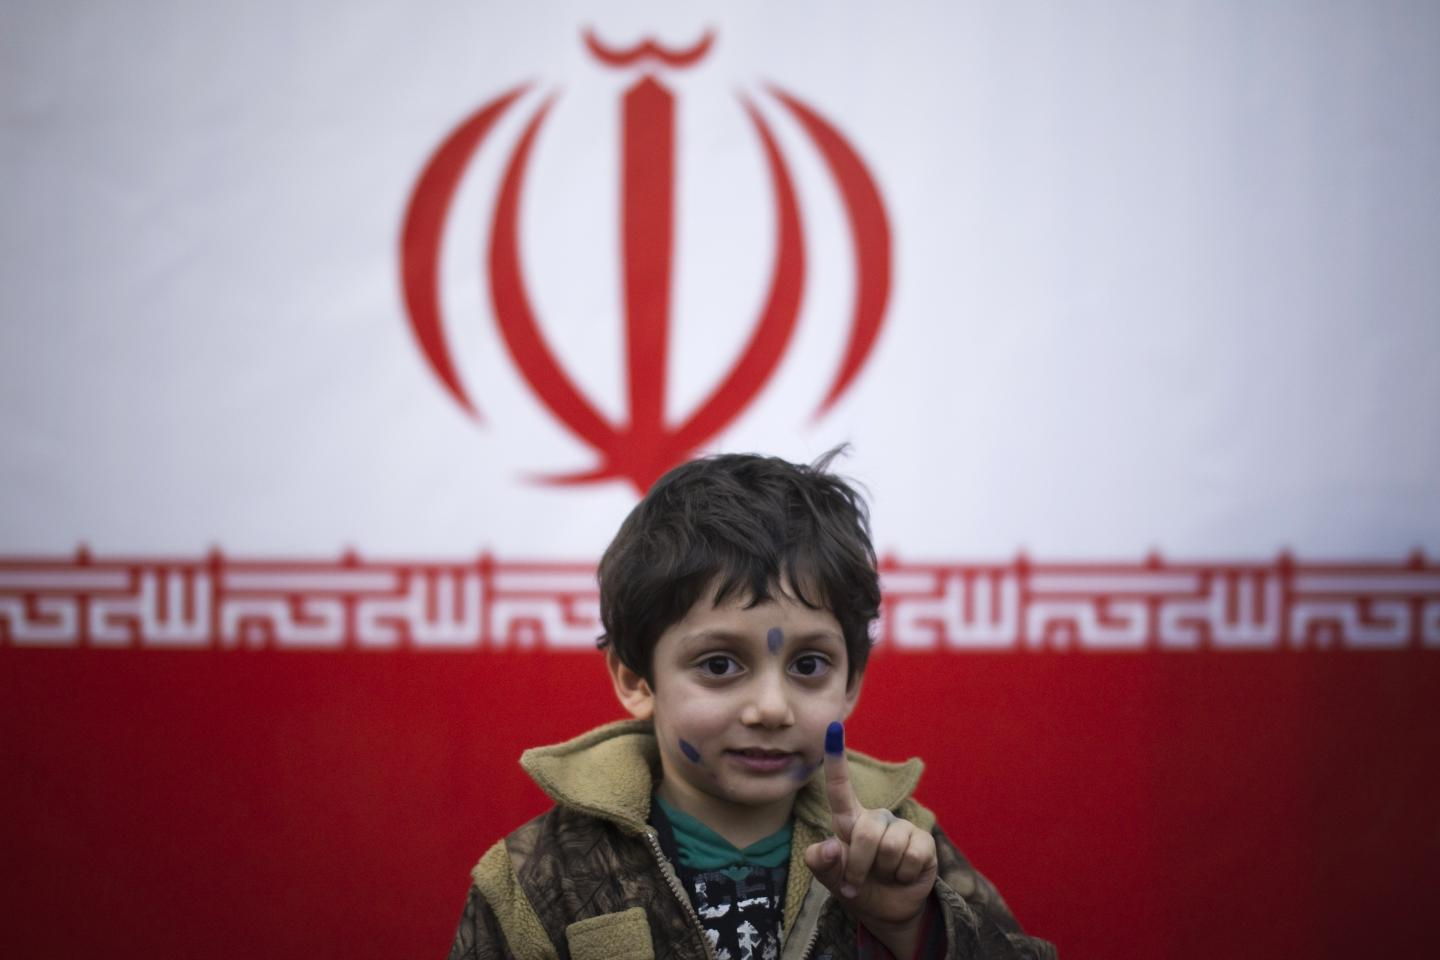 Three ways for Iranians to effect a peaceful regime change